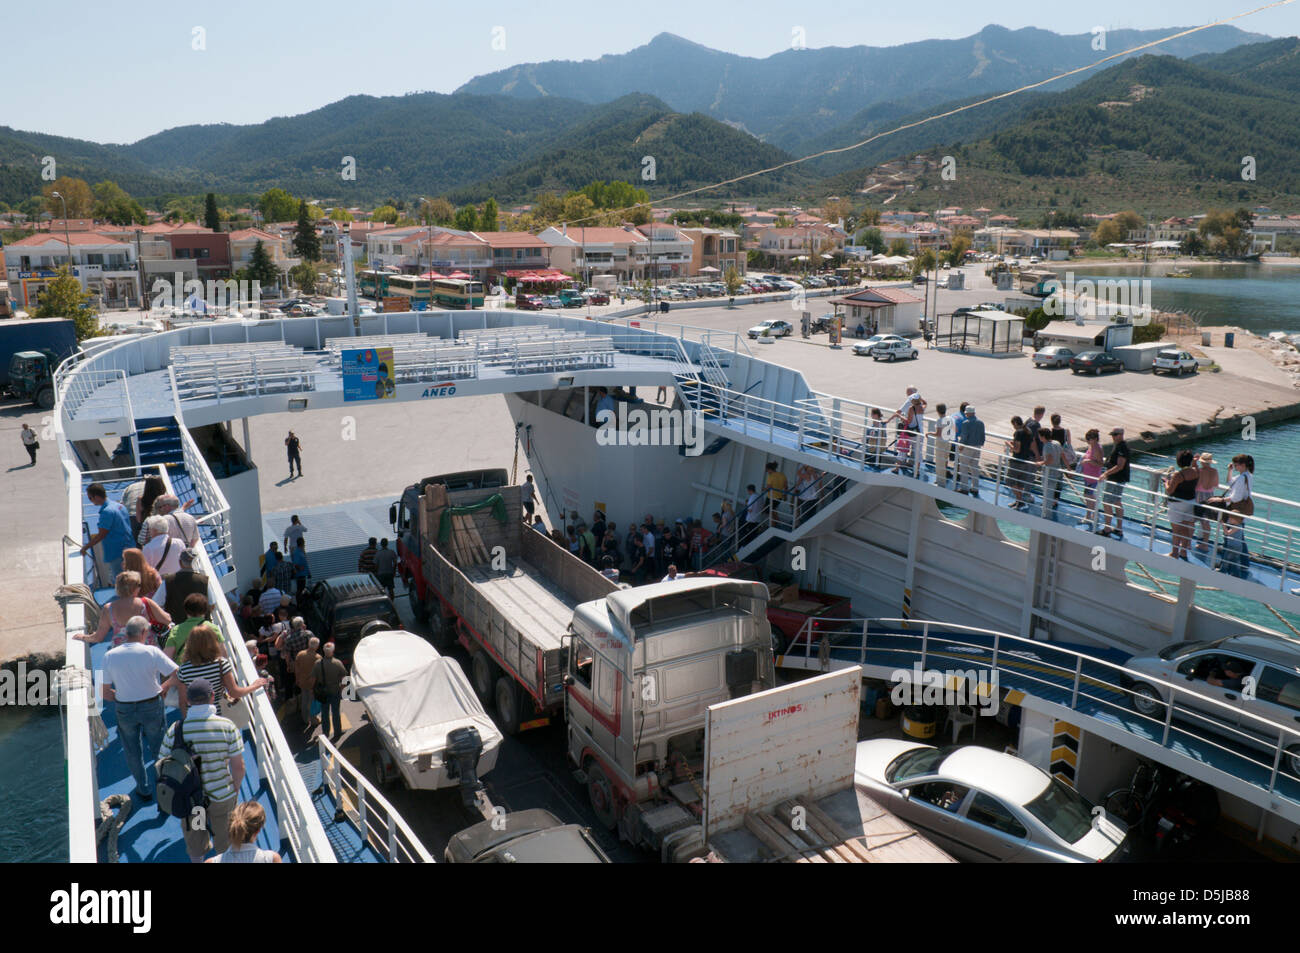 September Ferry from Keramoti on the Greek mainland docking in harbour at Limenas (Thassos Town) - Stock Image